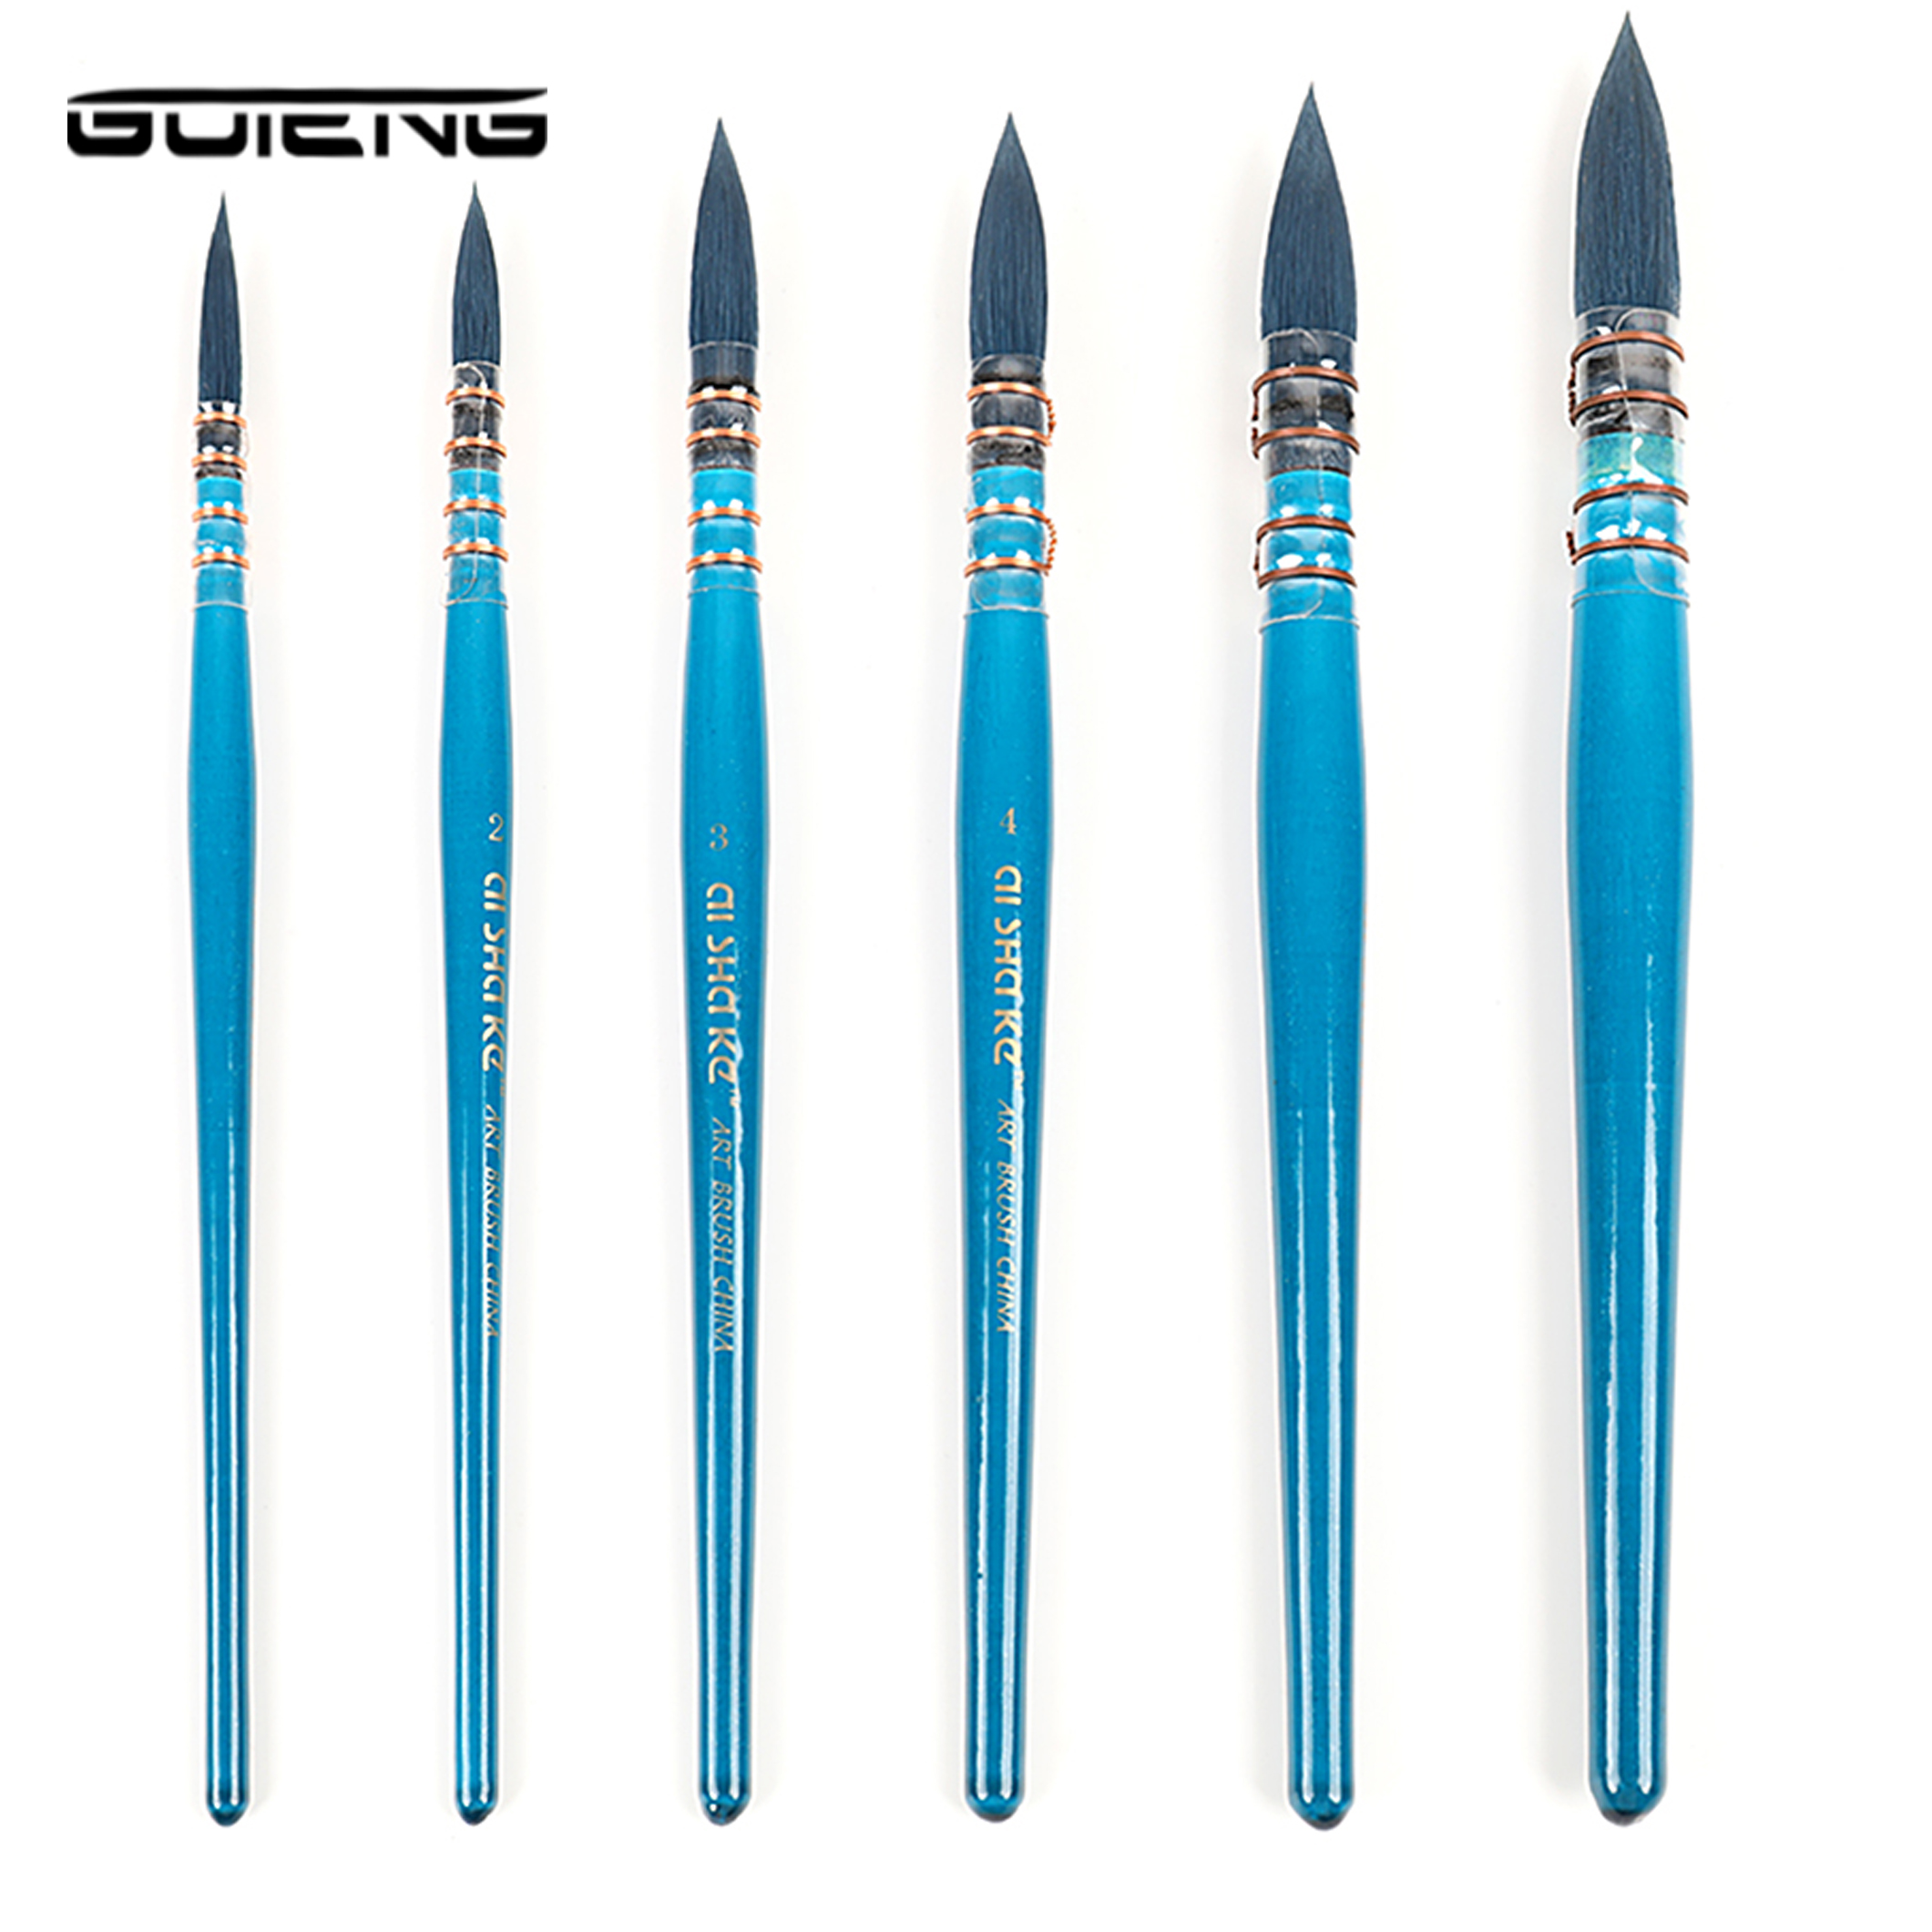 Blue Wooden Writing Brush For Artist Watercolor Paint Brush French Style Pointed Painting Brushes For Watercolor Art Supplies